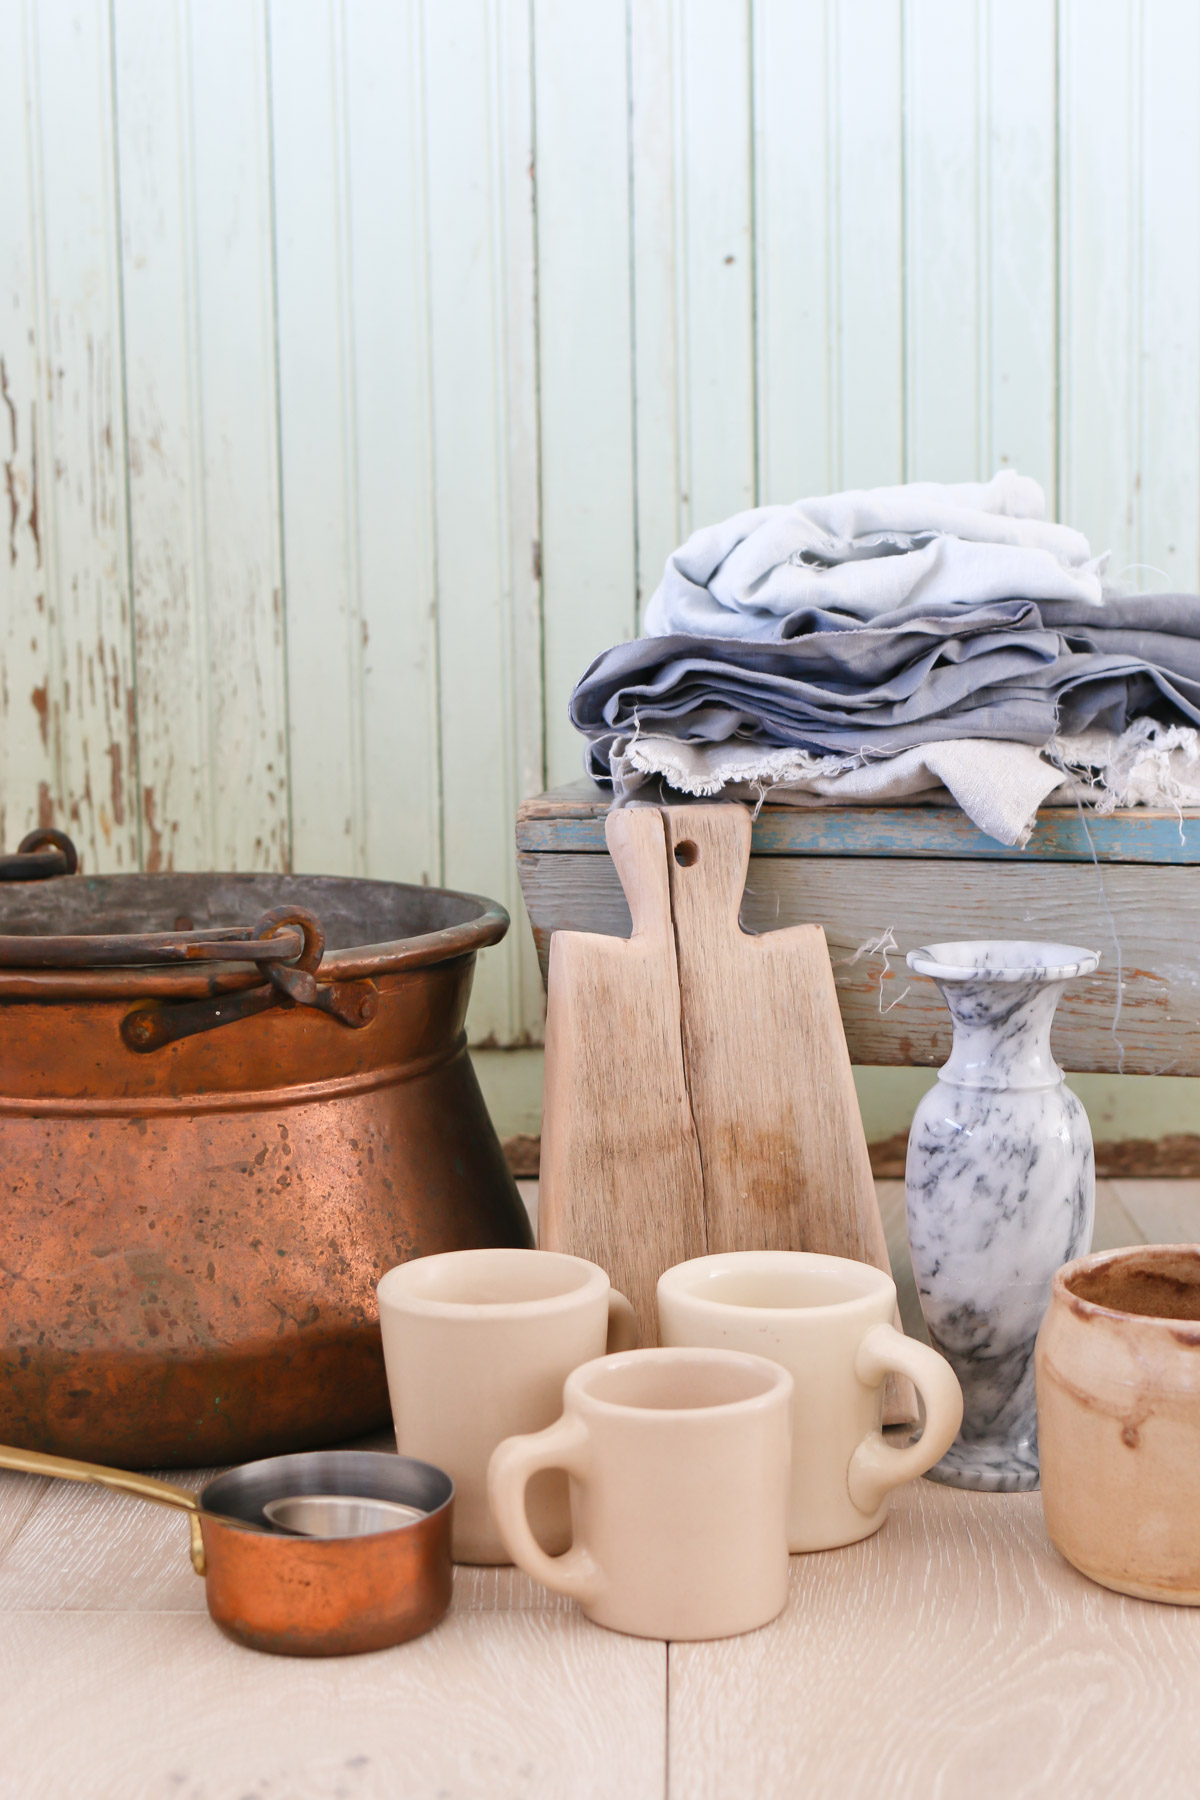 My Six Favorite Textures to Look for when I go Antique Shopping